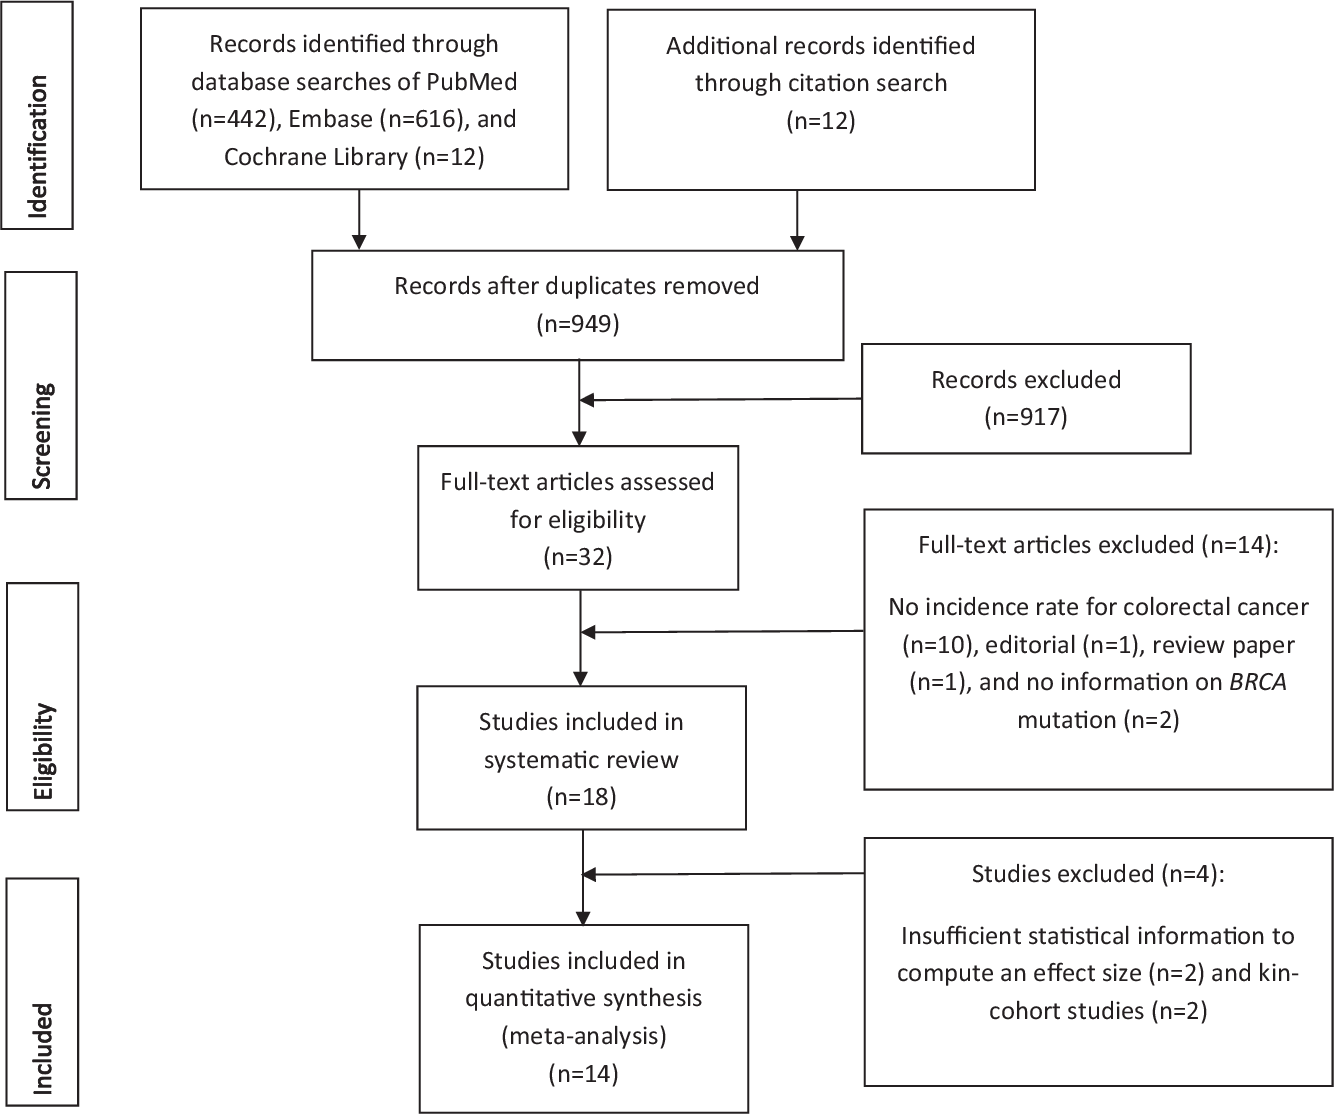 Pdf Brca1 And Brca2 Gene Mutations And Colorectal Cancer Risk Systematic Review And Meta Analysis Semantic Scholar